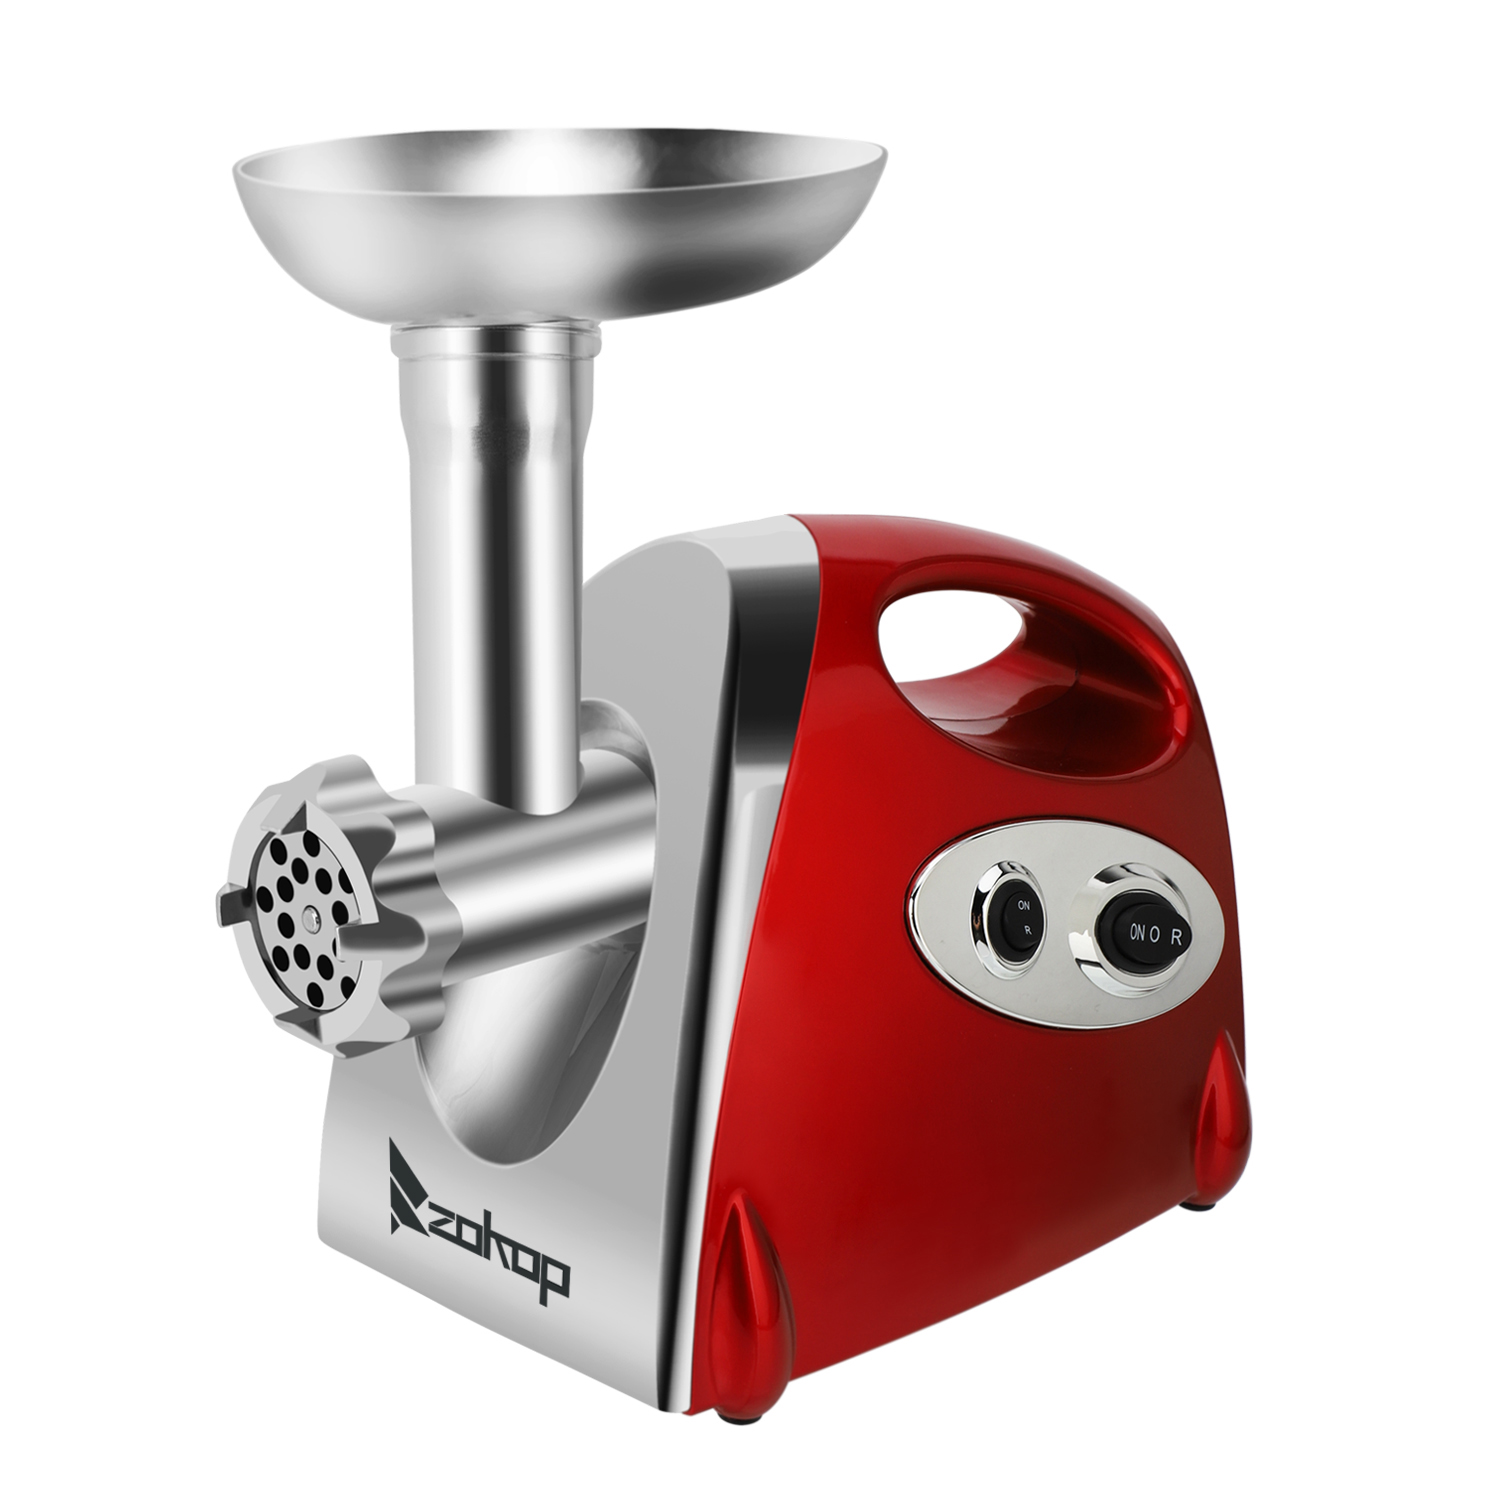 Kitchen Grinder: Electric Meat Grinder Home Kitchen Industrial Stainless